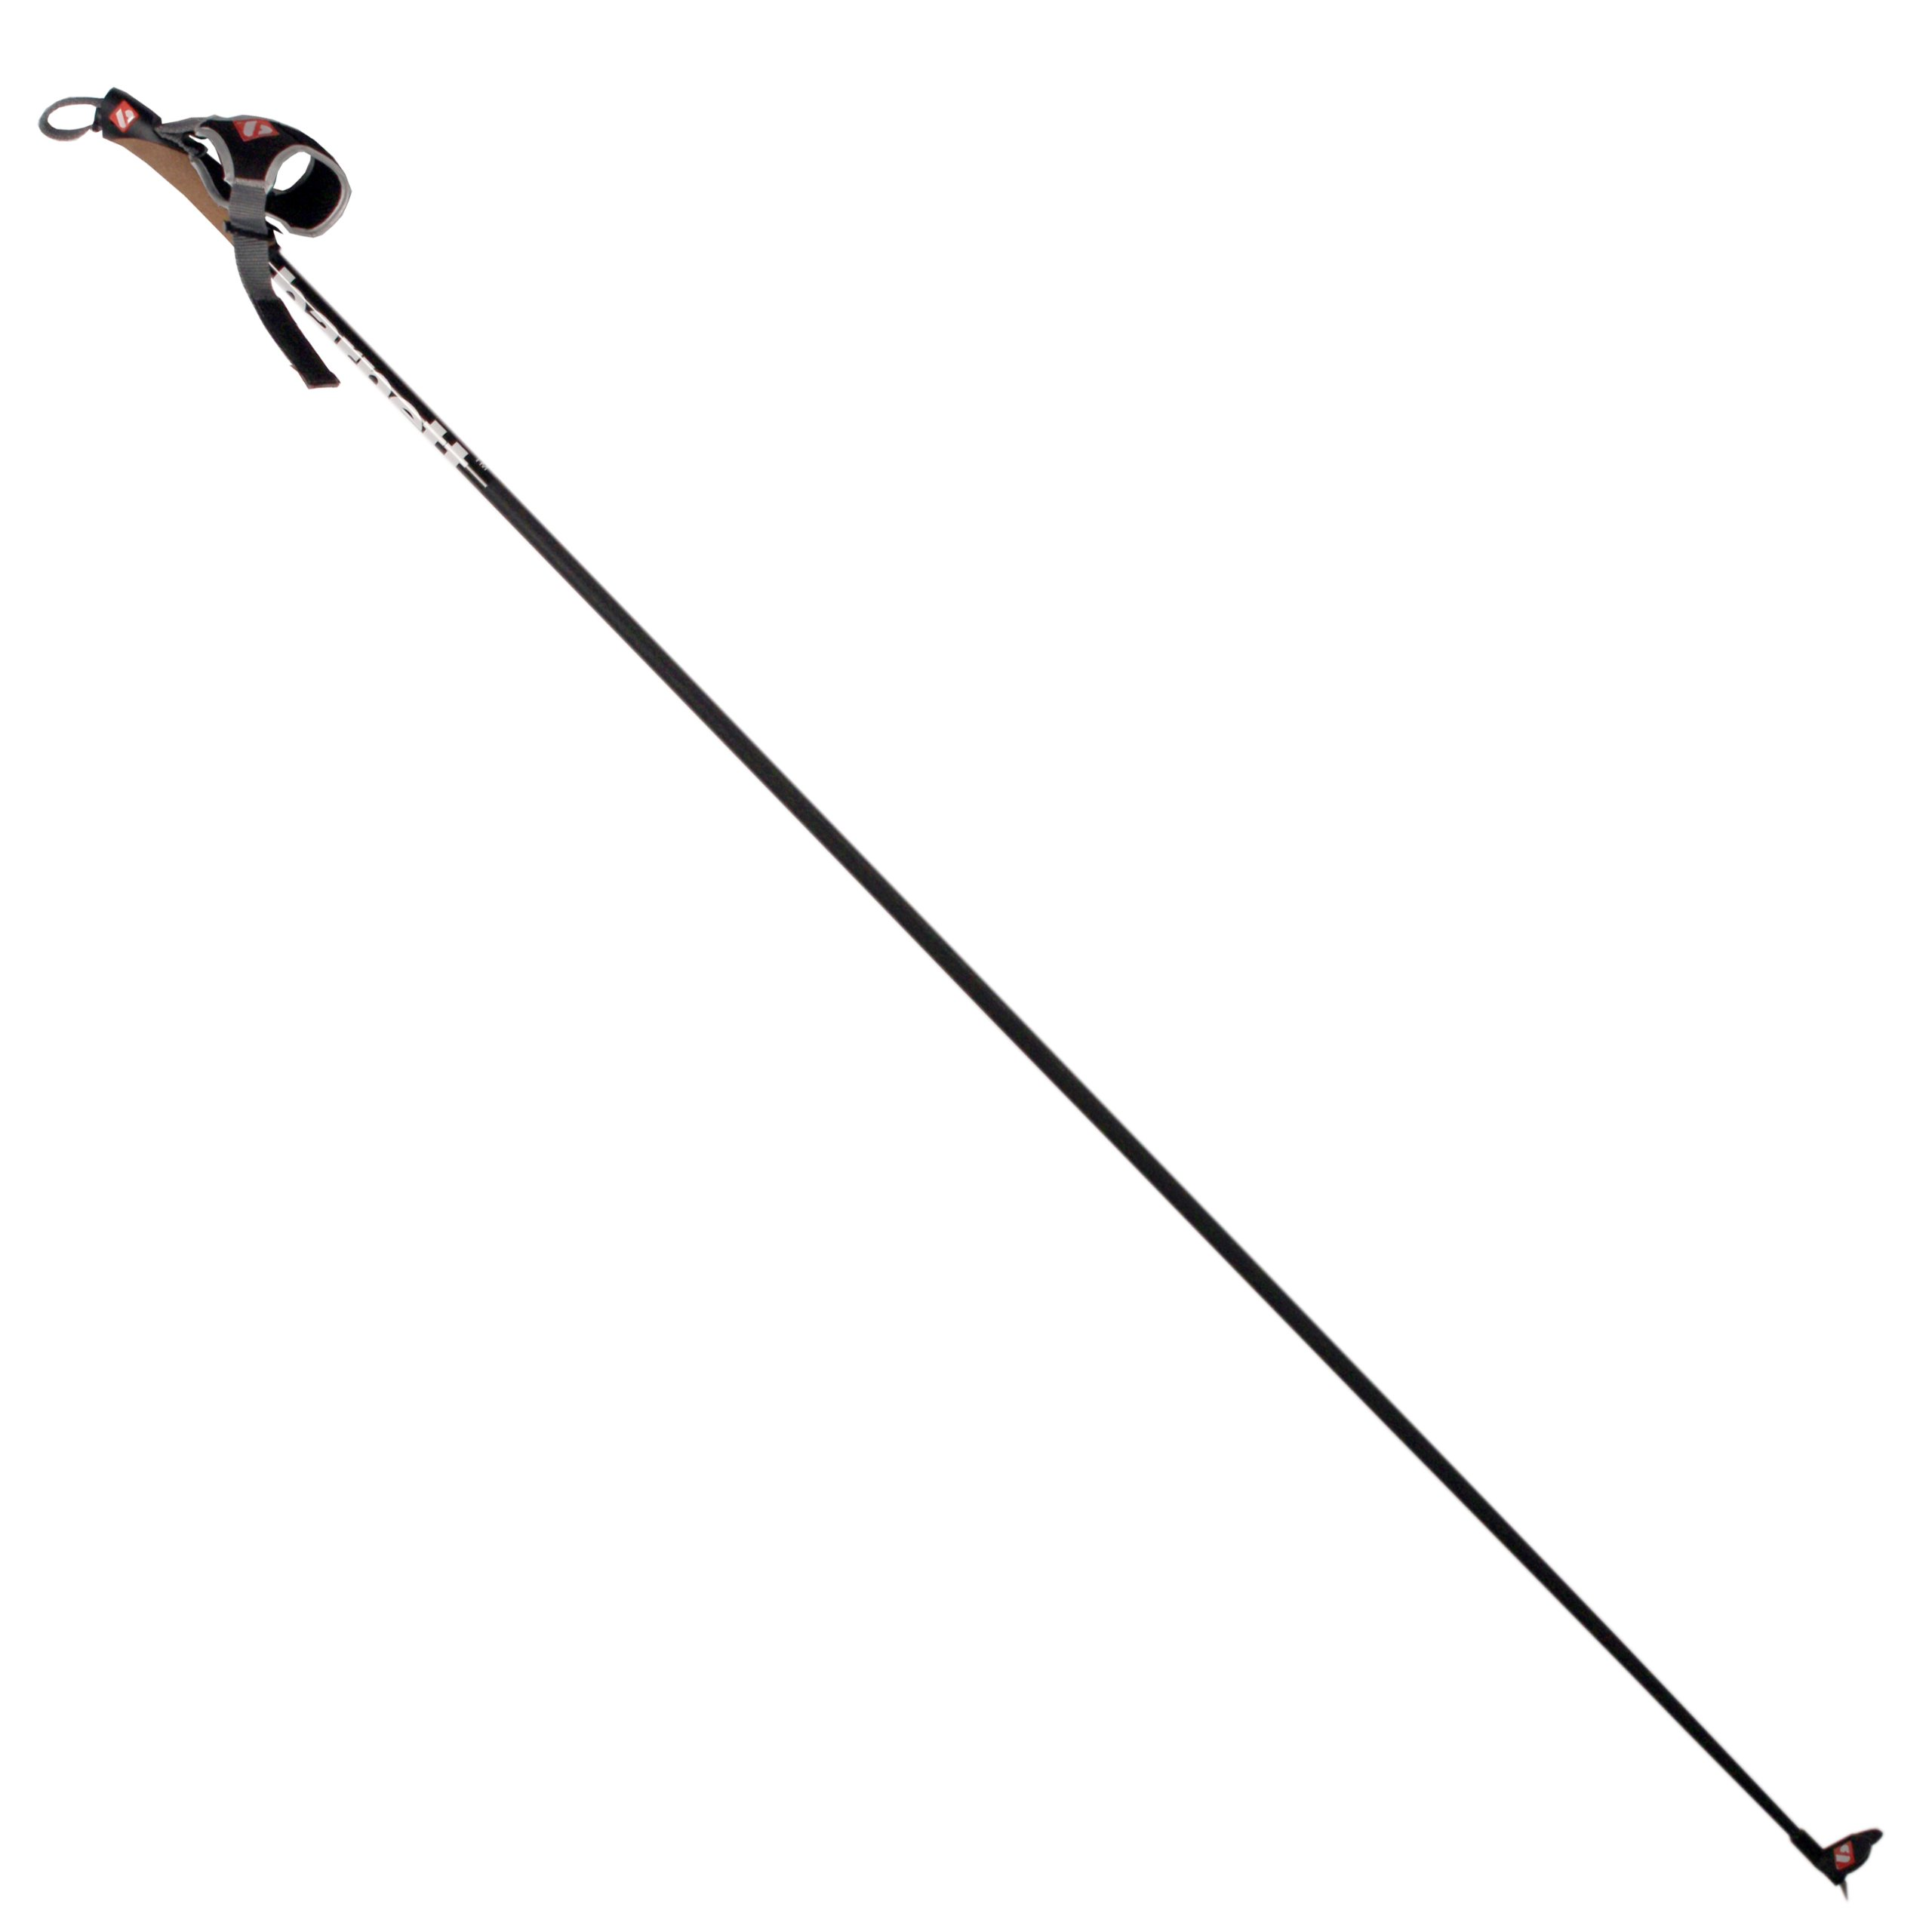 XC-HM Professional poles for nordic ski and rollerski, Barnett (Tell us the size you need from 140 to 175 cm) by barnett